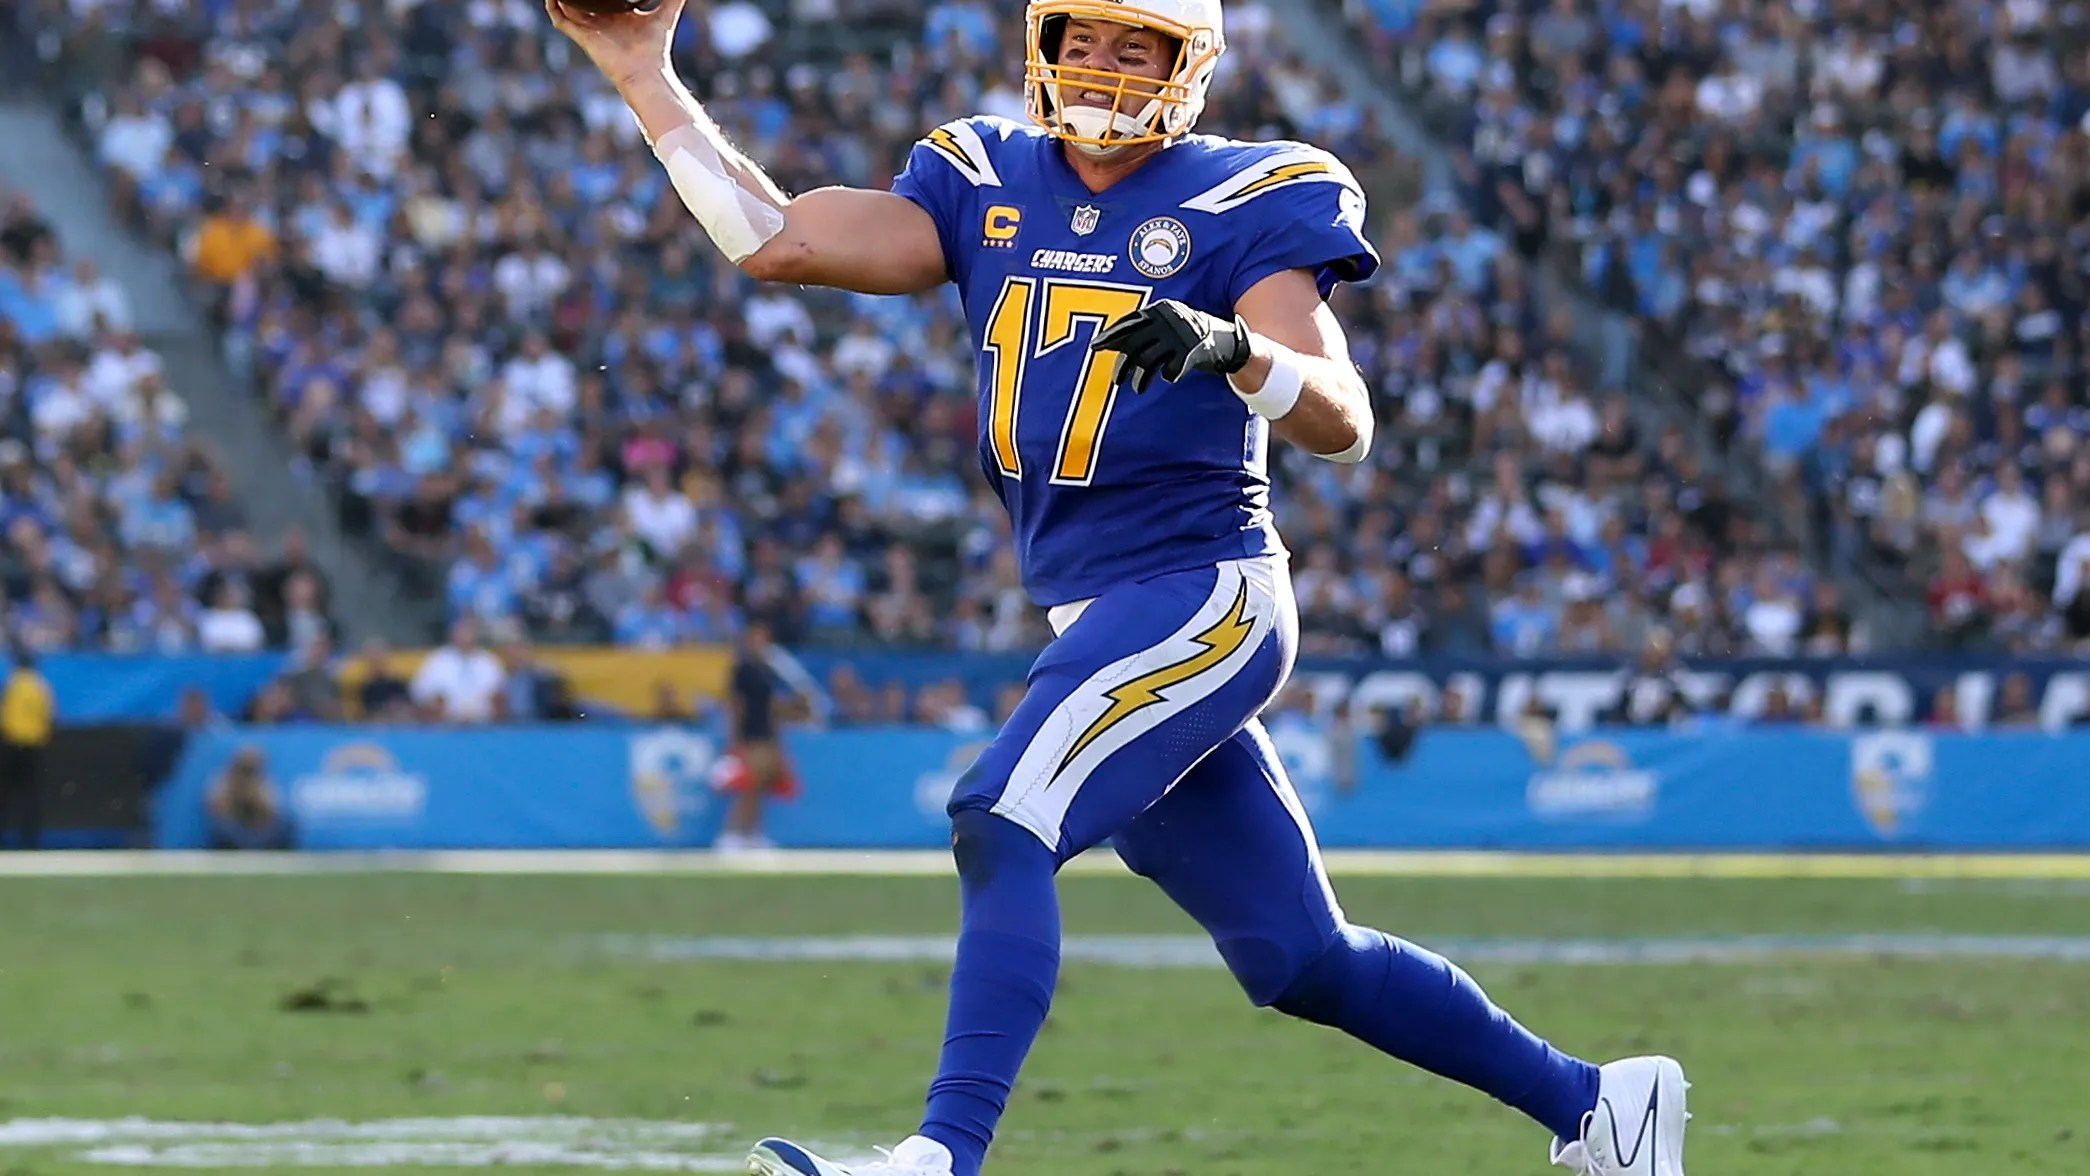 Rivers' record-setting day impresses Brady